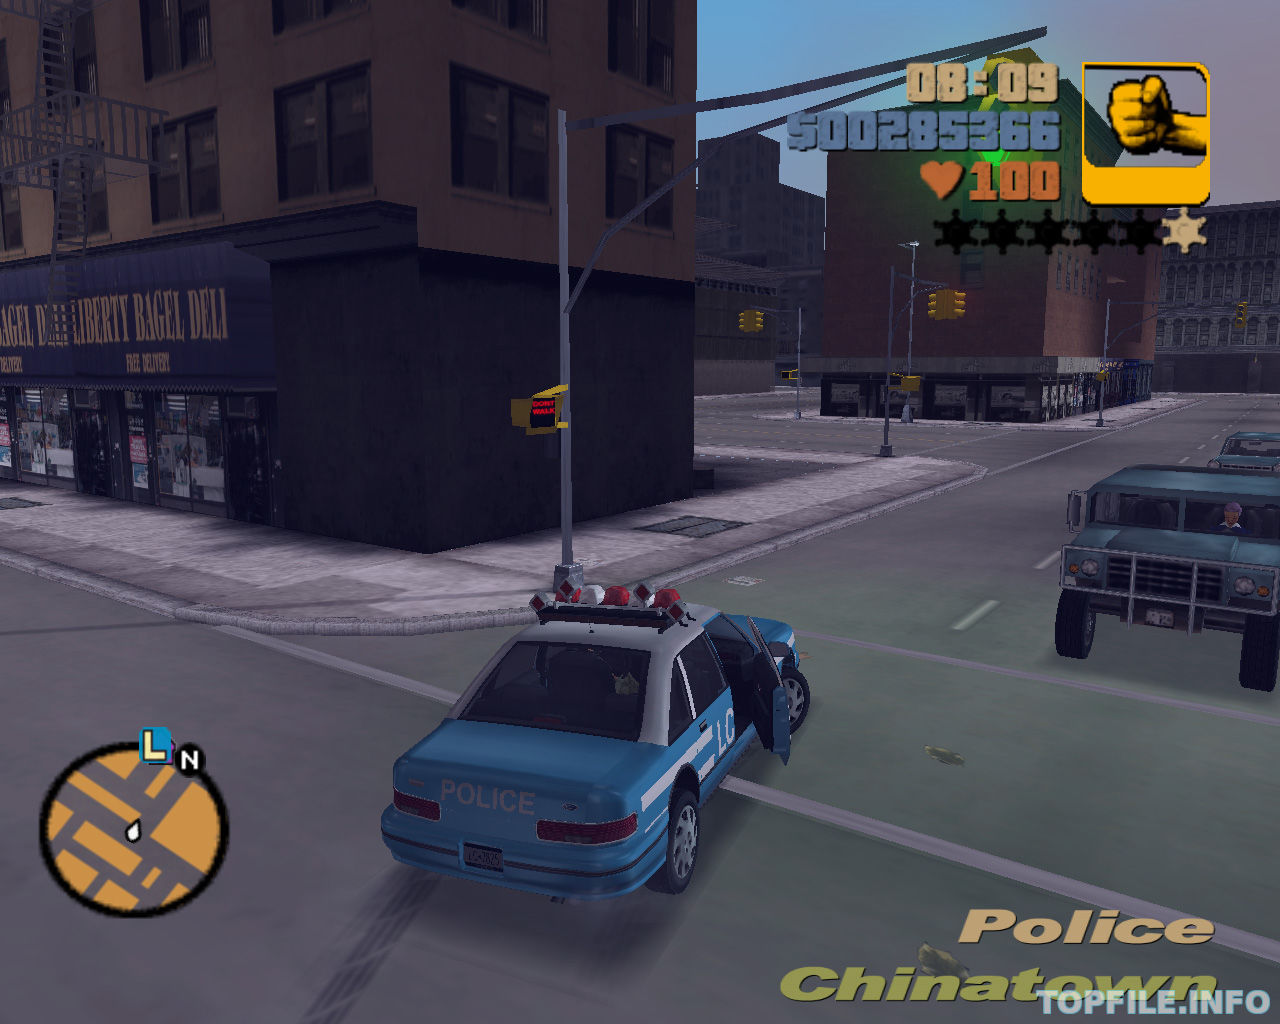 Gta extreme download utorrent for ipad